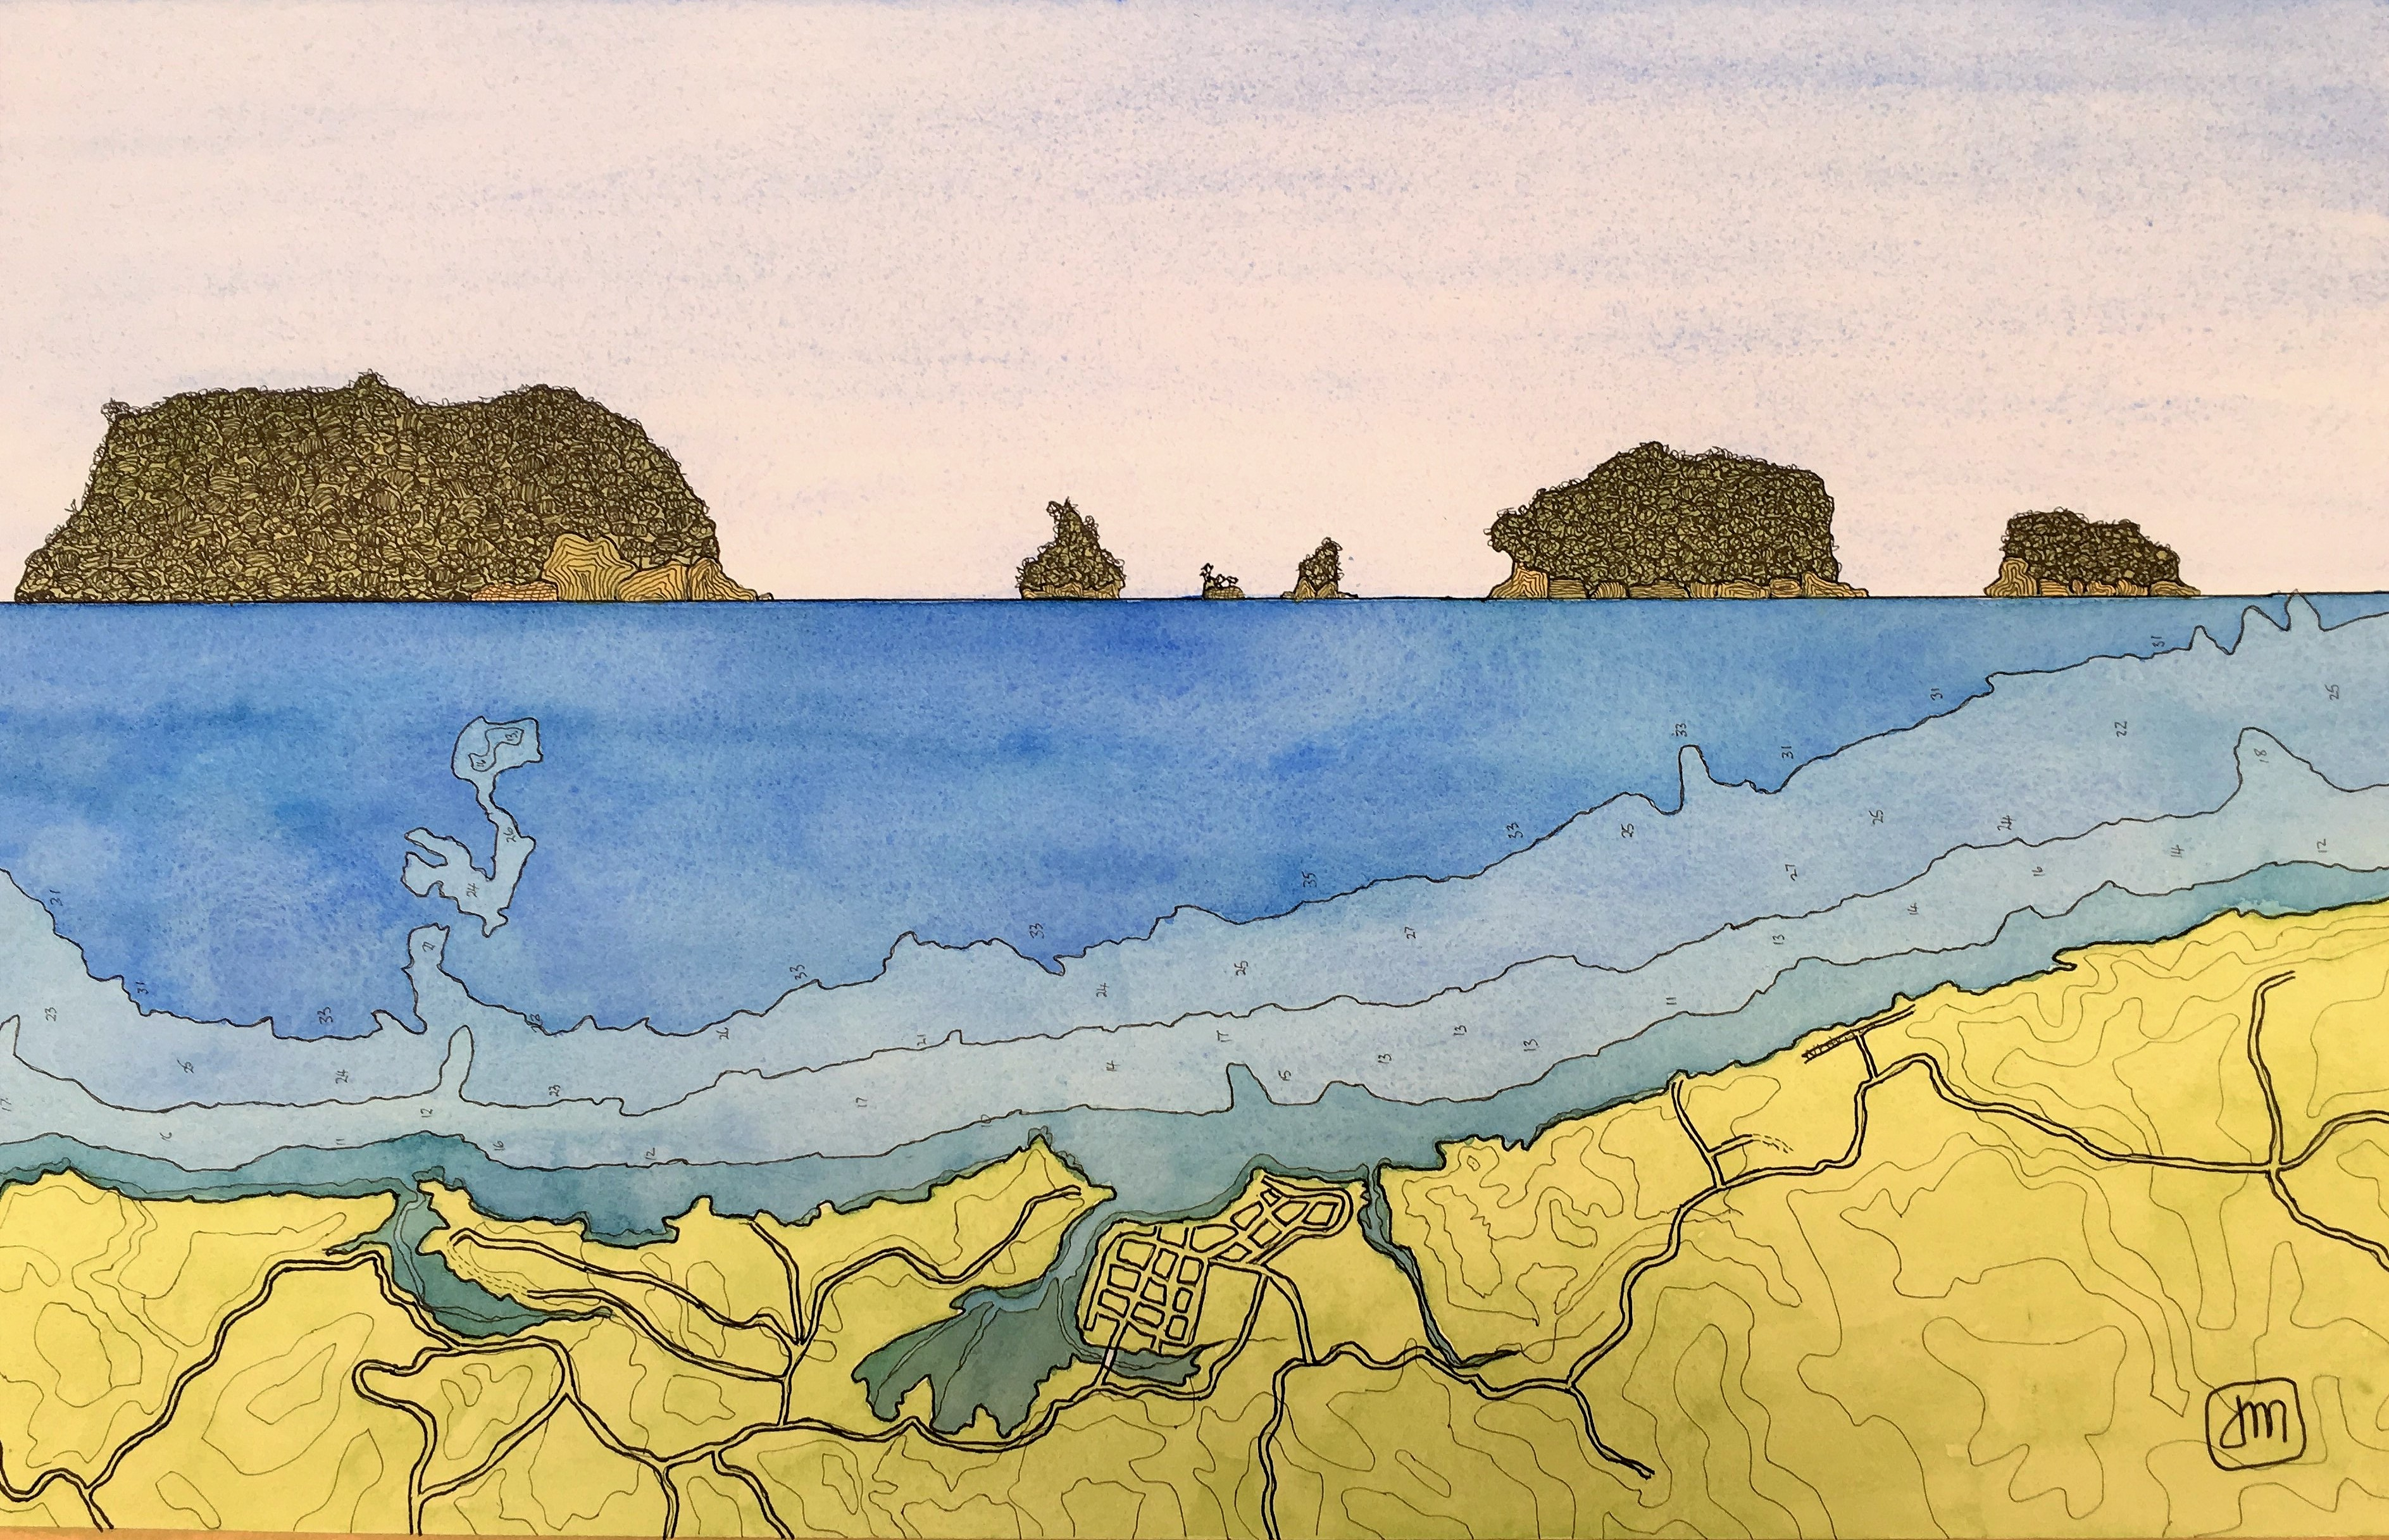 Whangamata Islands